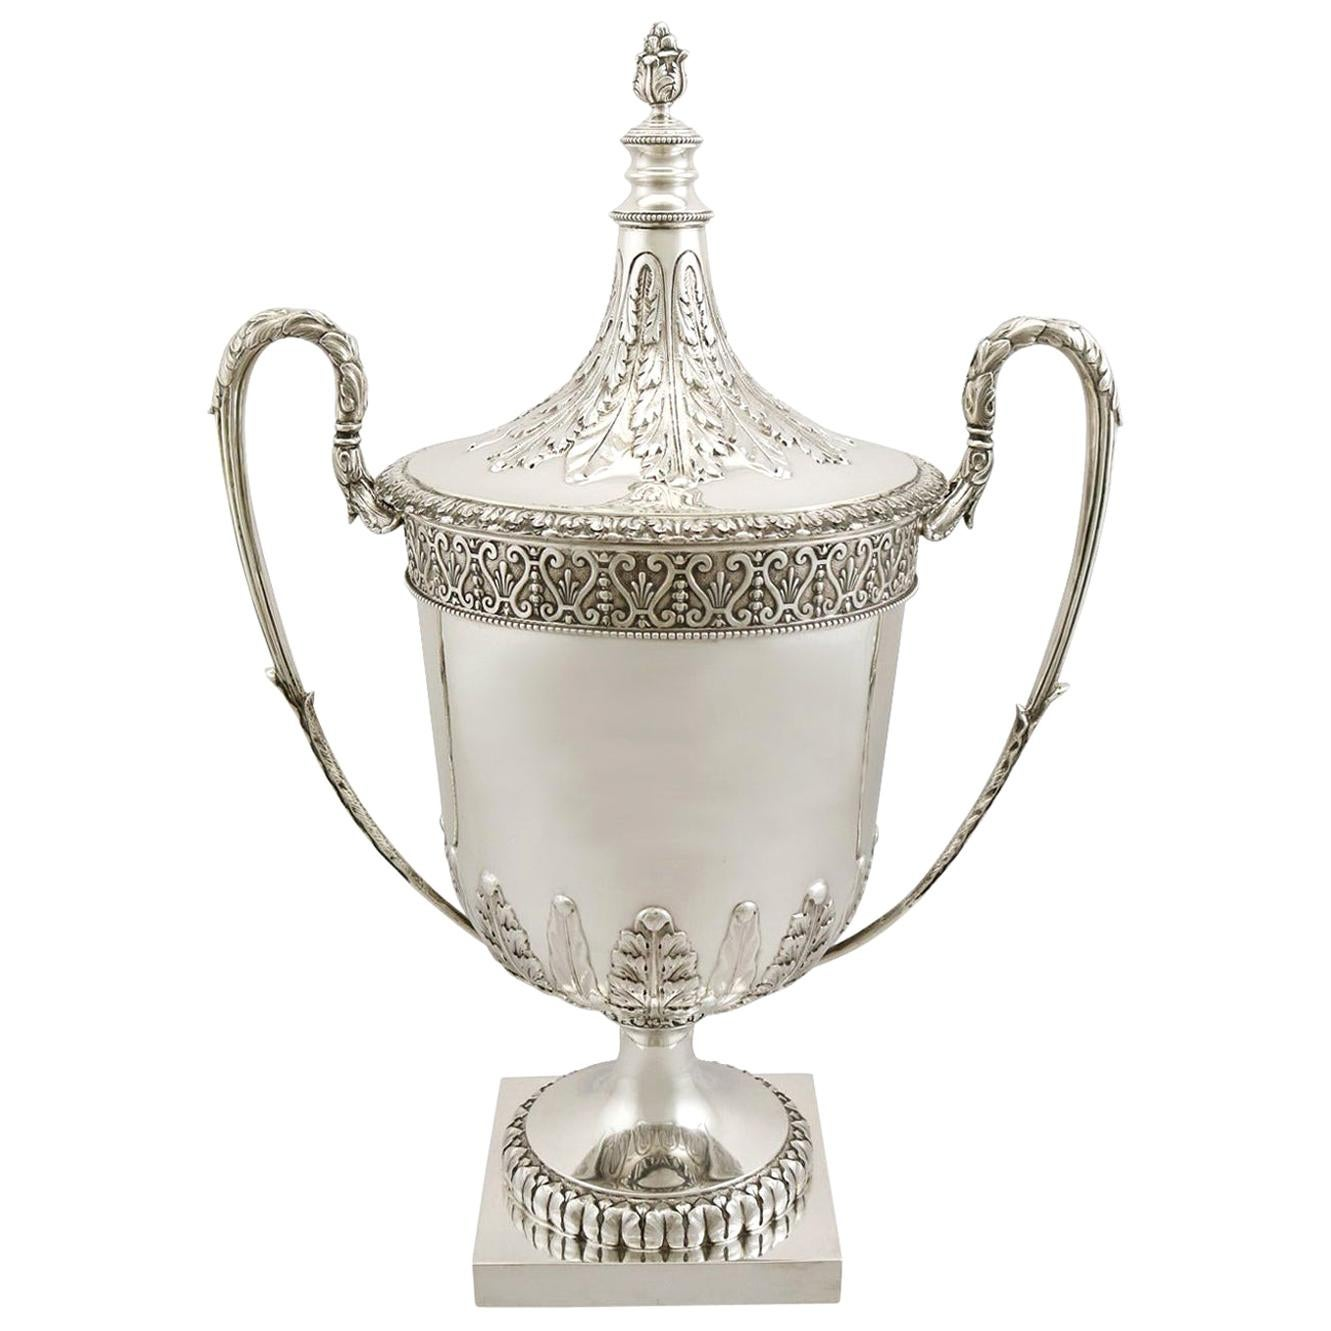 Antique Sterling Silver Presentation Cup and Cover by C S Harris & Sons